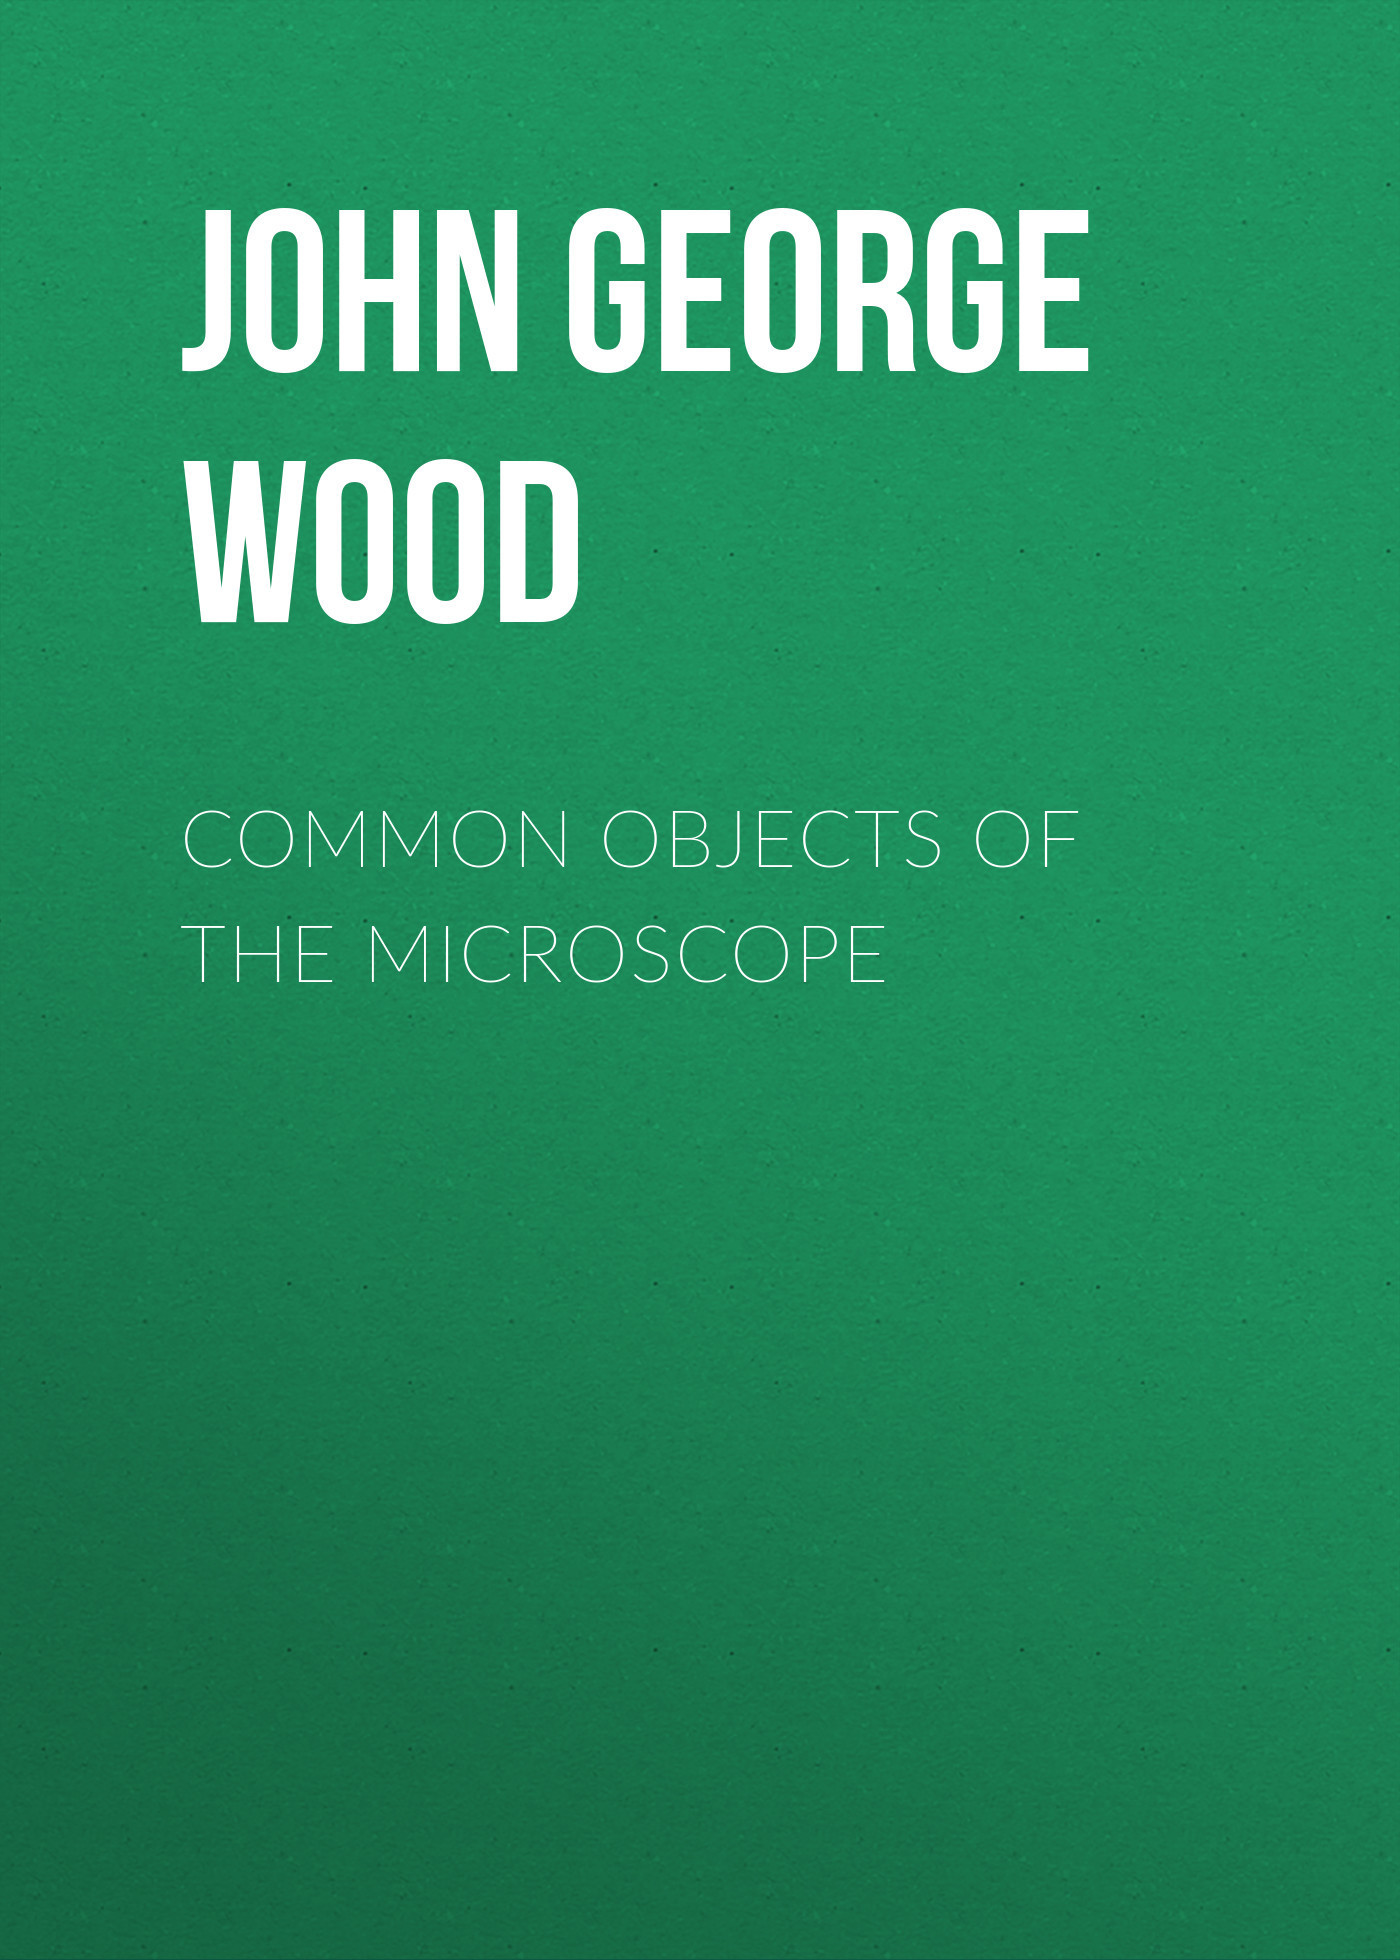 John George Wood Common Objects of the Microscope txs 30 dissecting microscope 2x objective wf10x eyepiece monocular stereo microscope 20x up right image